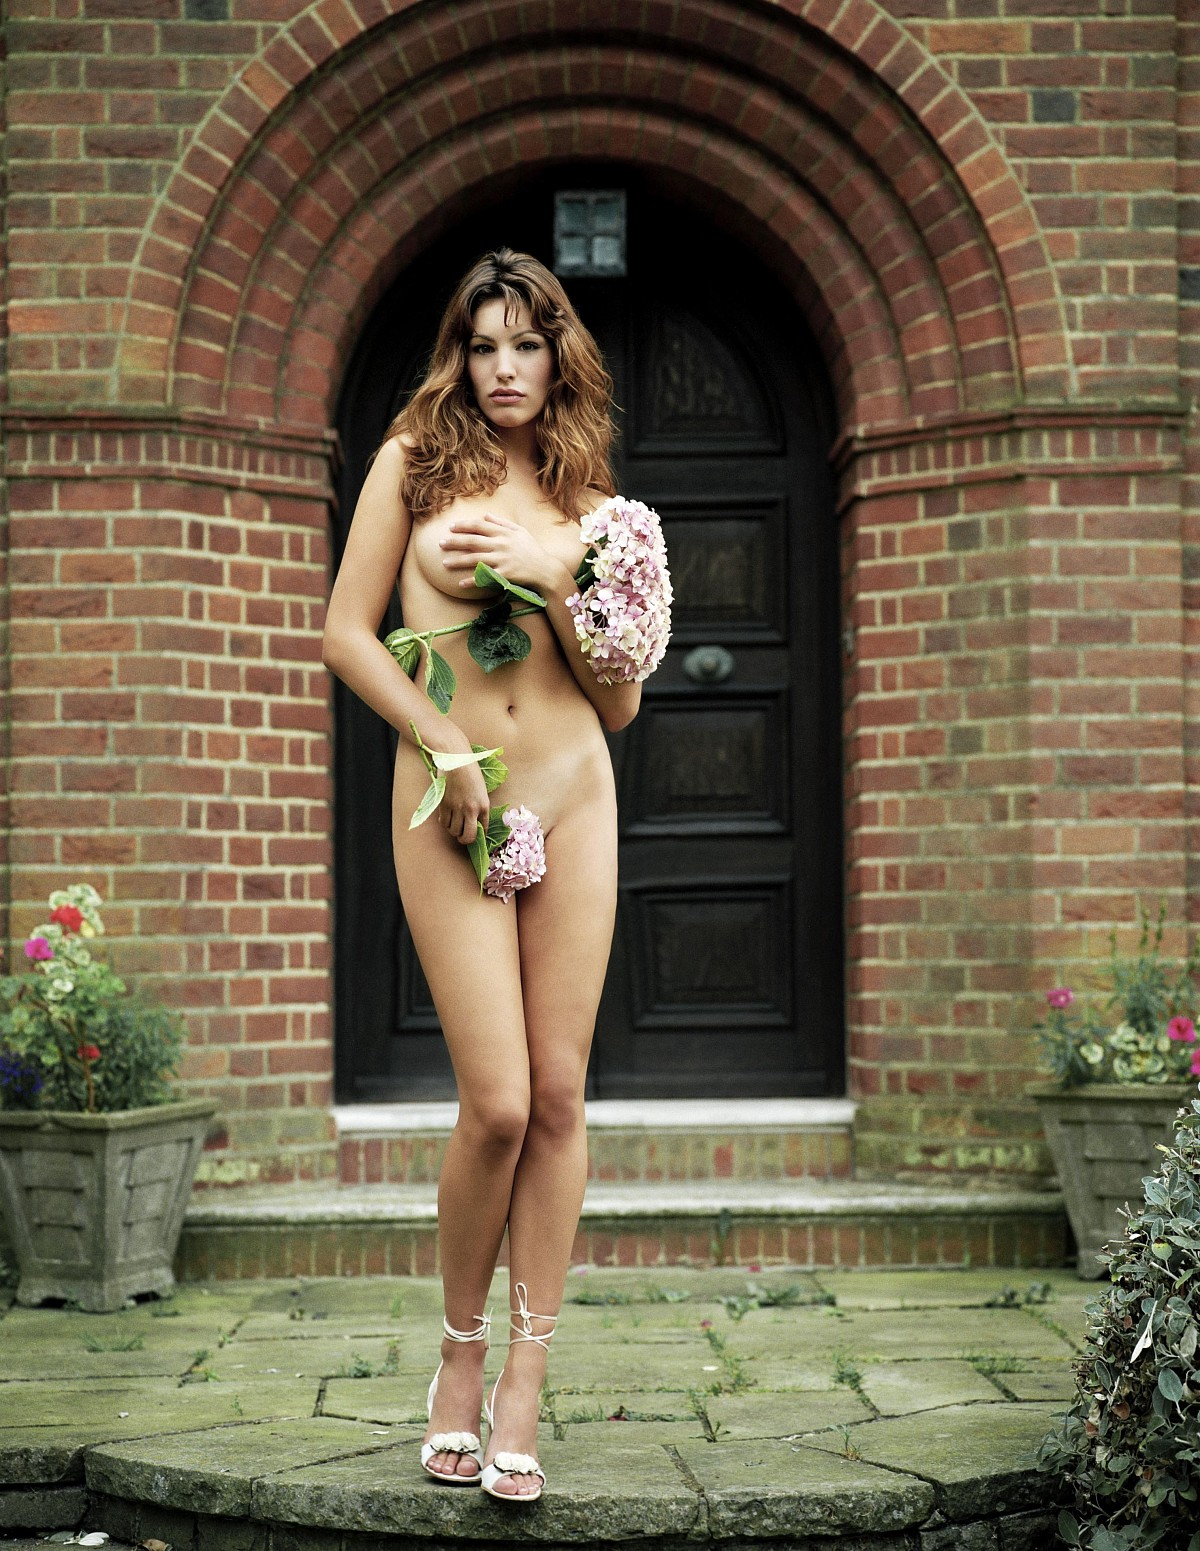 Think, Kelly brook wallpaper nude good piece